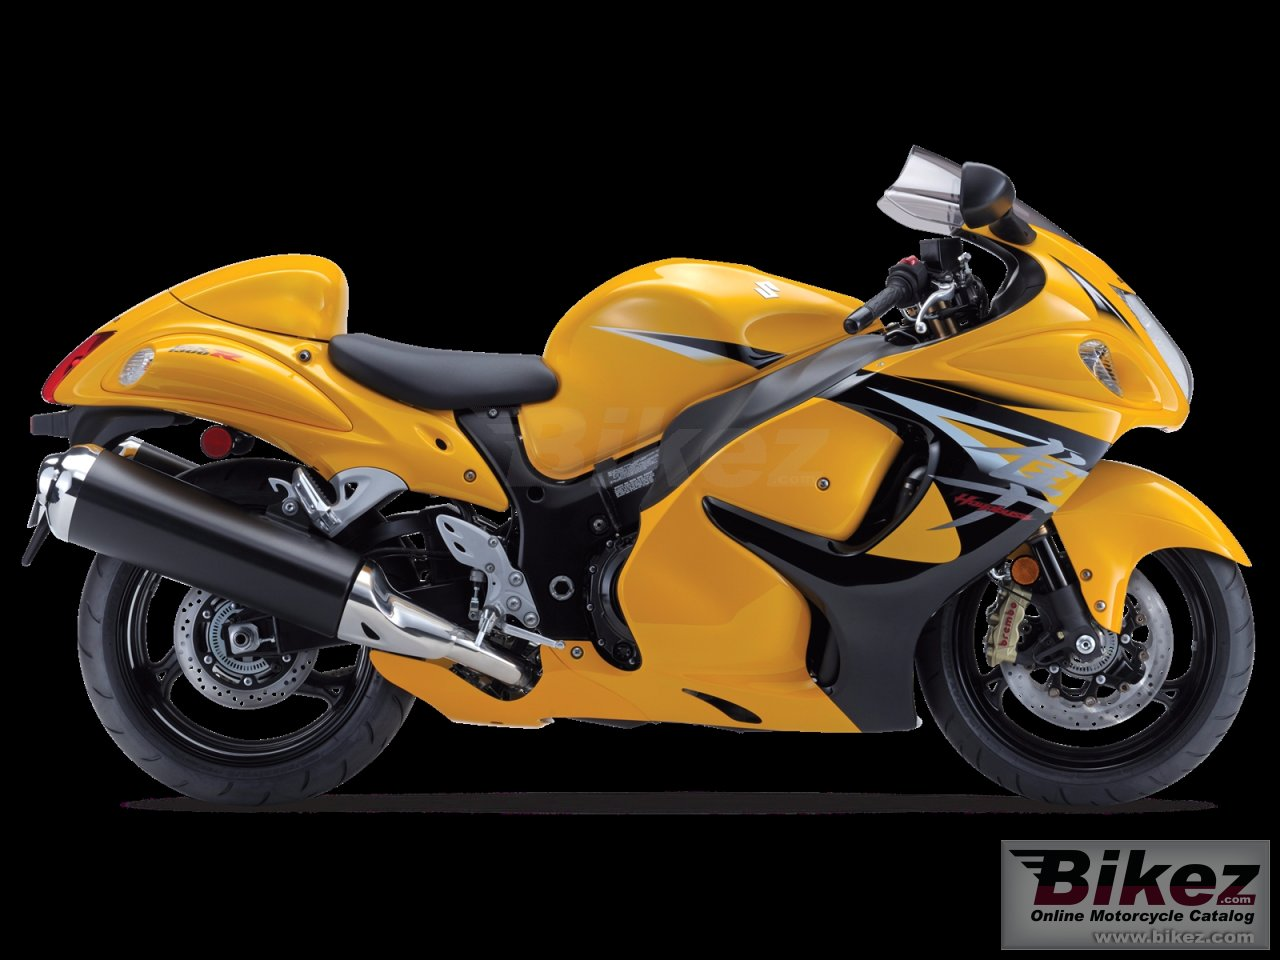 Big Suzuki hayabusa limited edition picture and wallpaper from Bikez.com